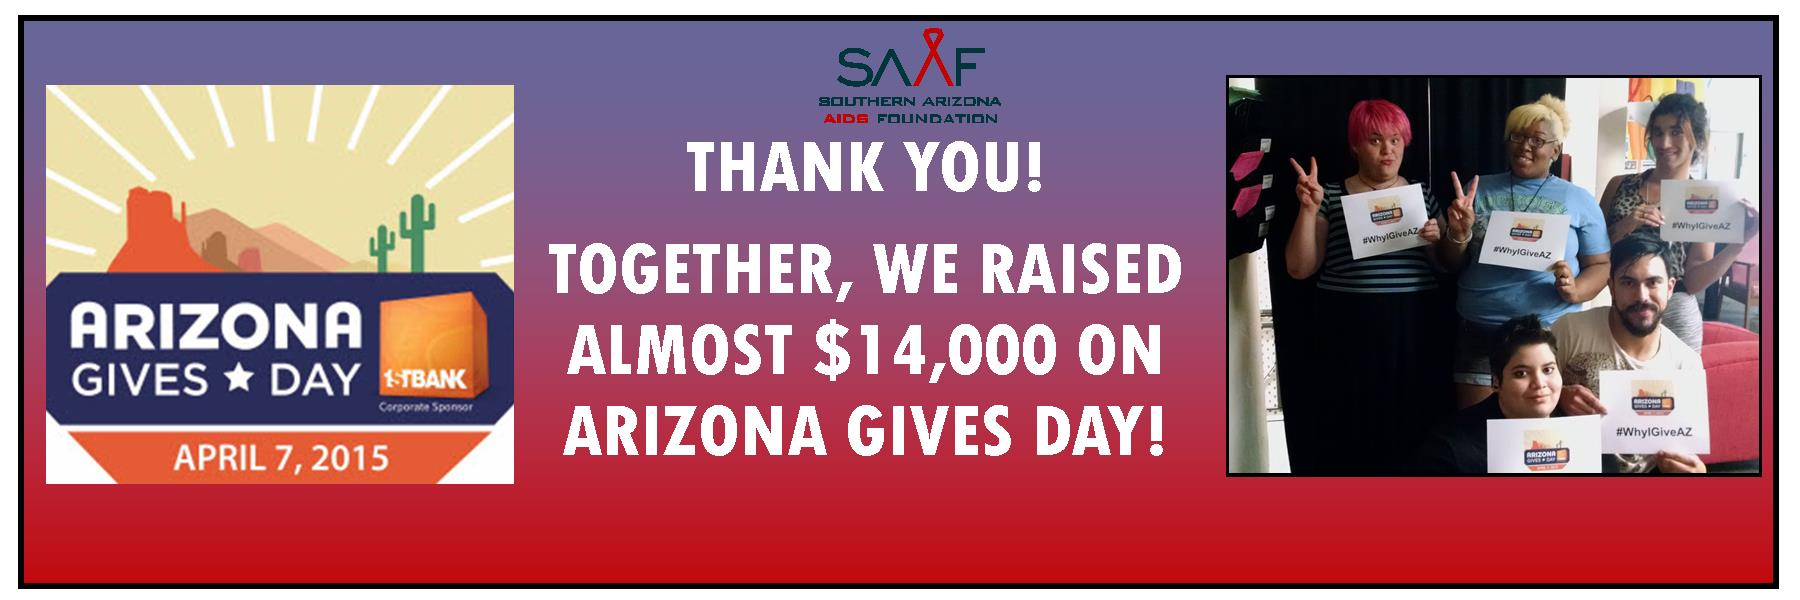 YOU made a big difference for SAAF on AZ Gives Day & we thank you!